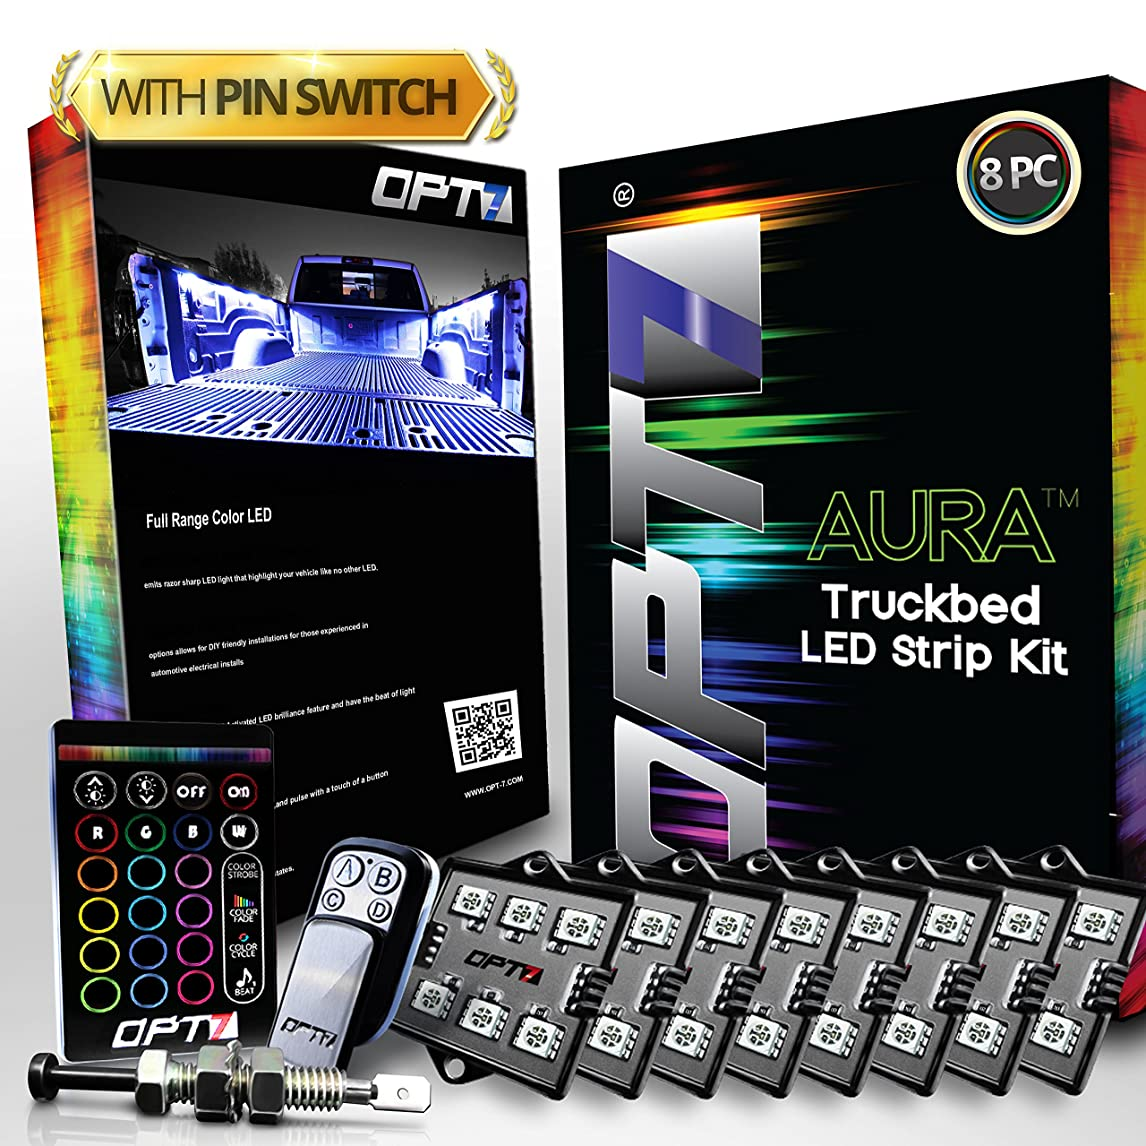 OPT7 Aura 8pc Truck Bed LED Lighting Kit - Sound Activated Multi-Color Lights - Wireless Remote - OE-Style Rocker Switch - w/AUTO-ON Tailgate Switch - 2 Yr Warranty ixpci96651924081